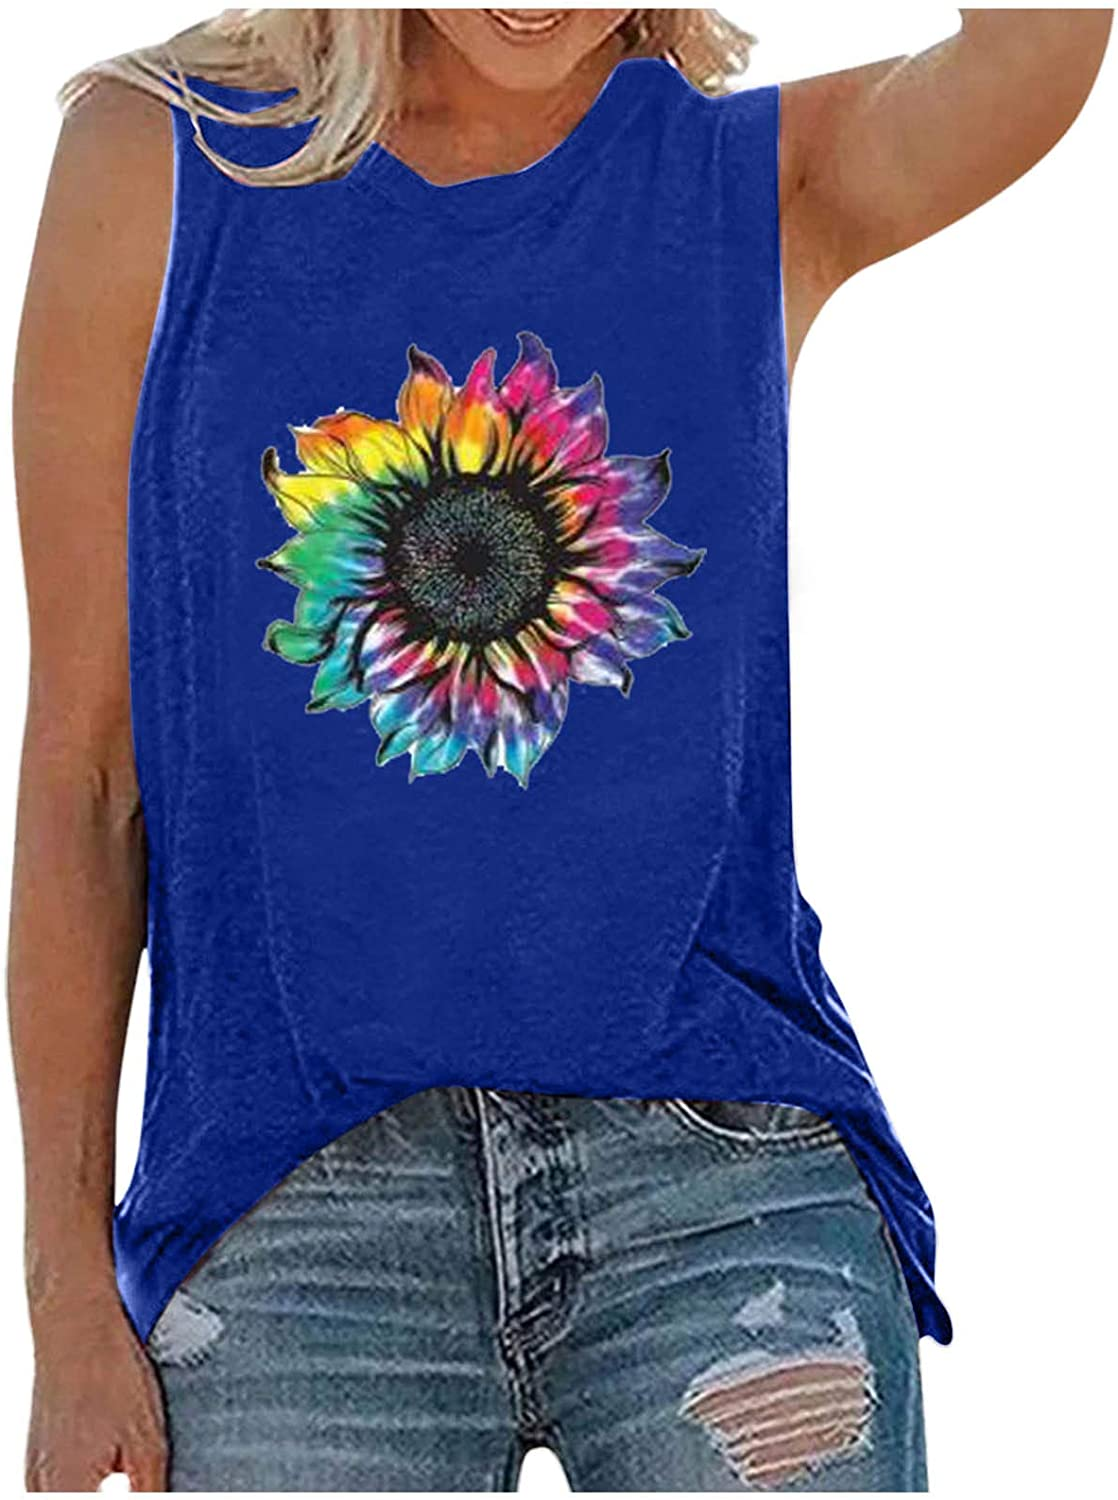 AODONG Summer Tops for Women, Womens Casual Summer Graphic Tank Tops Floral Printed O-Neck Sleeveless Loose Tee Shirts